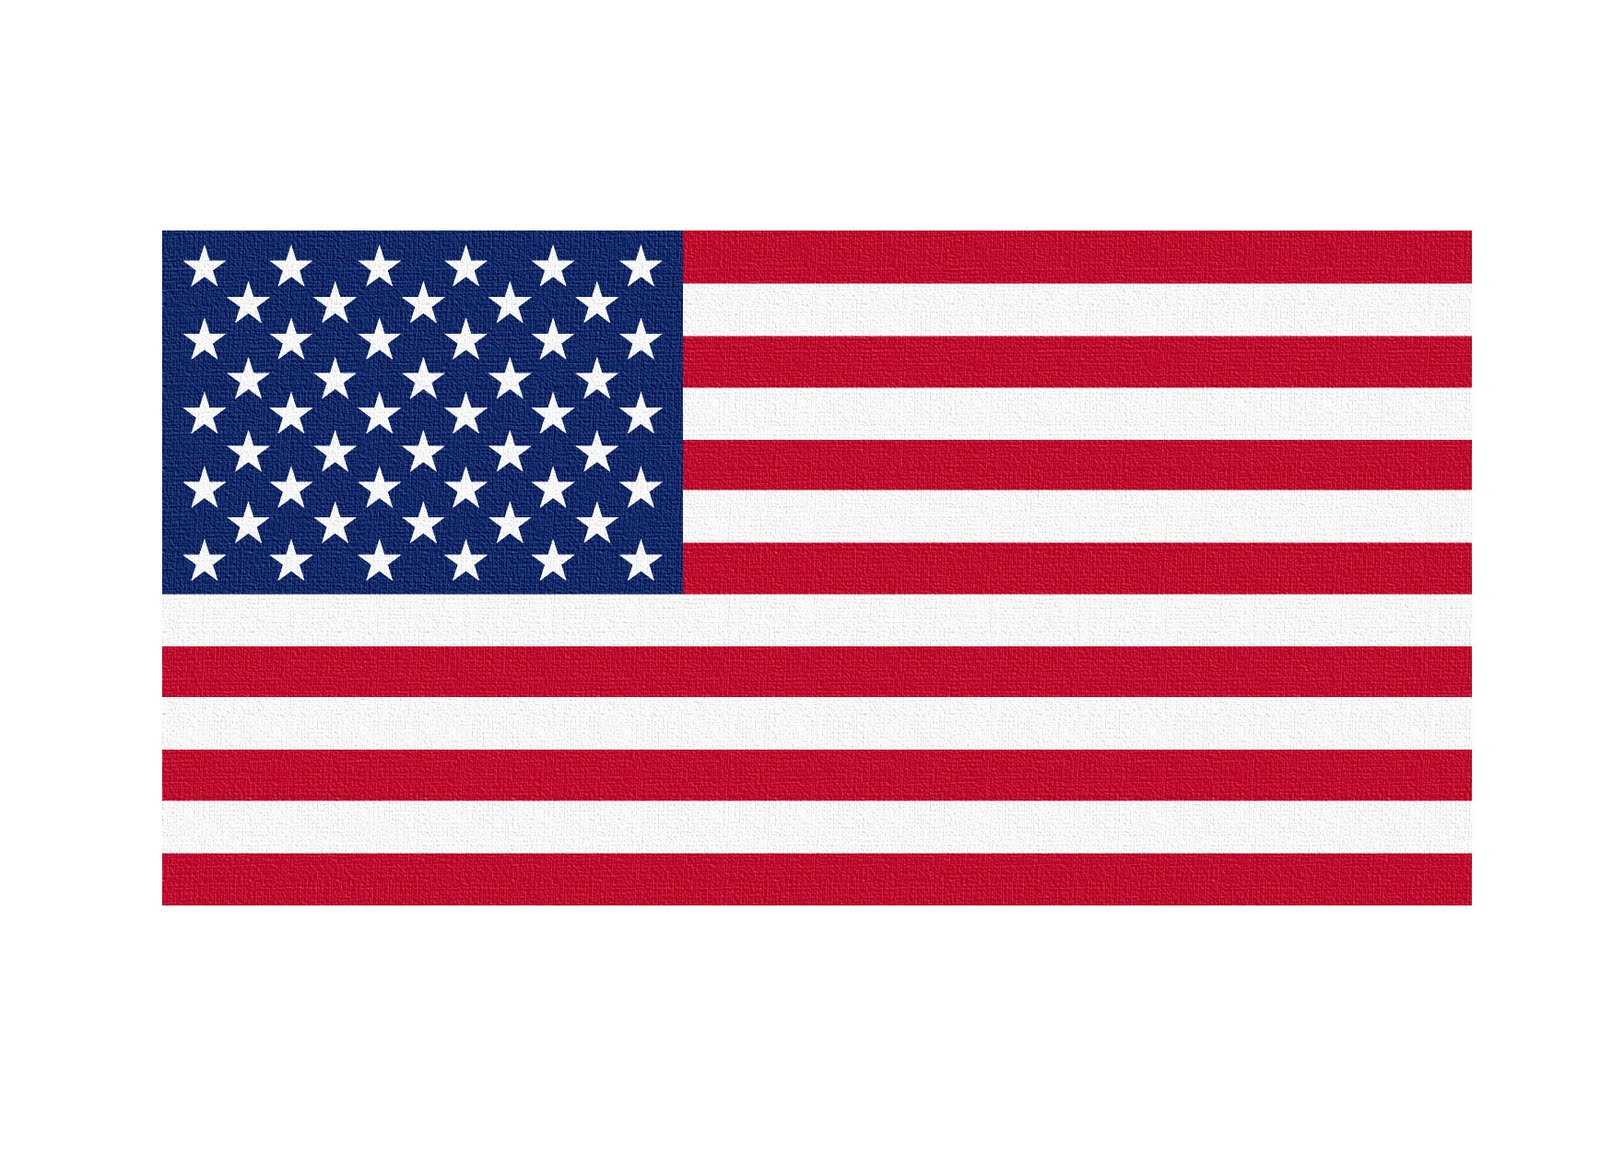 american flag high resolution clipart 5 ted s trash service inc rh tedstrash com american flag images clip art American Flag Eagle Clip Art